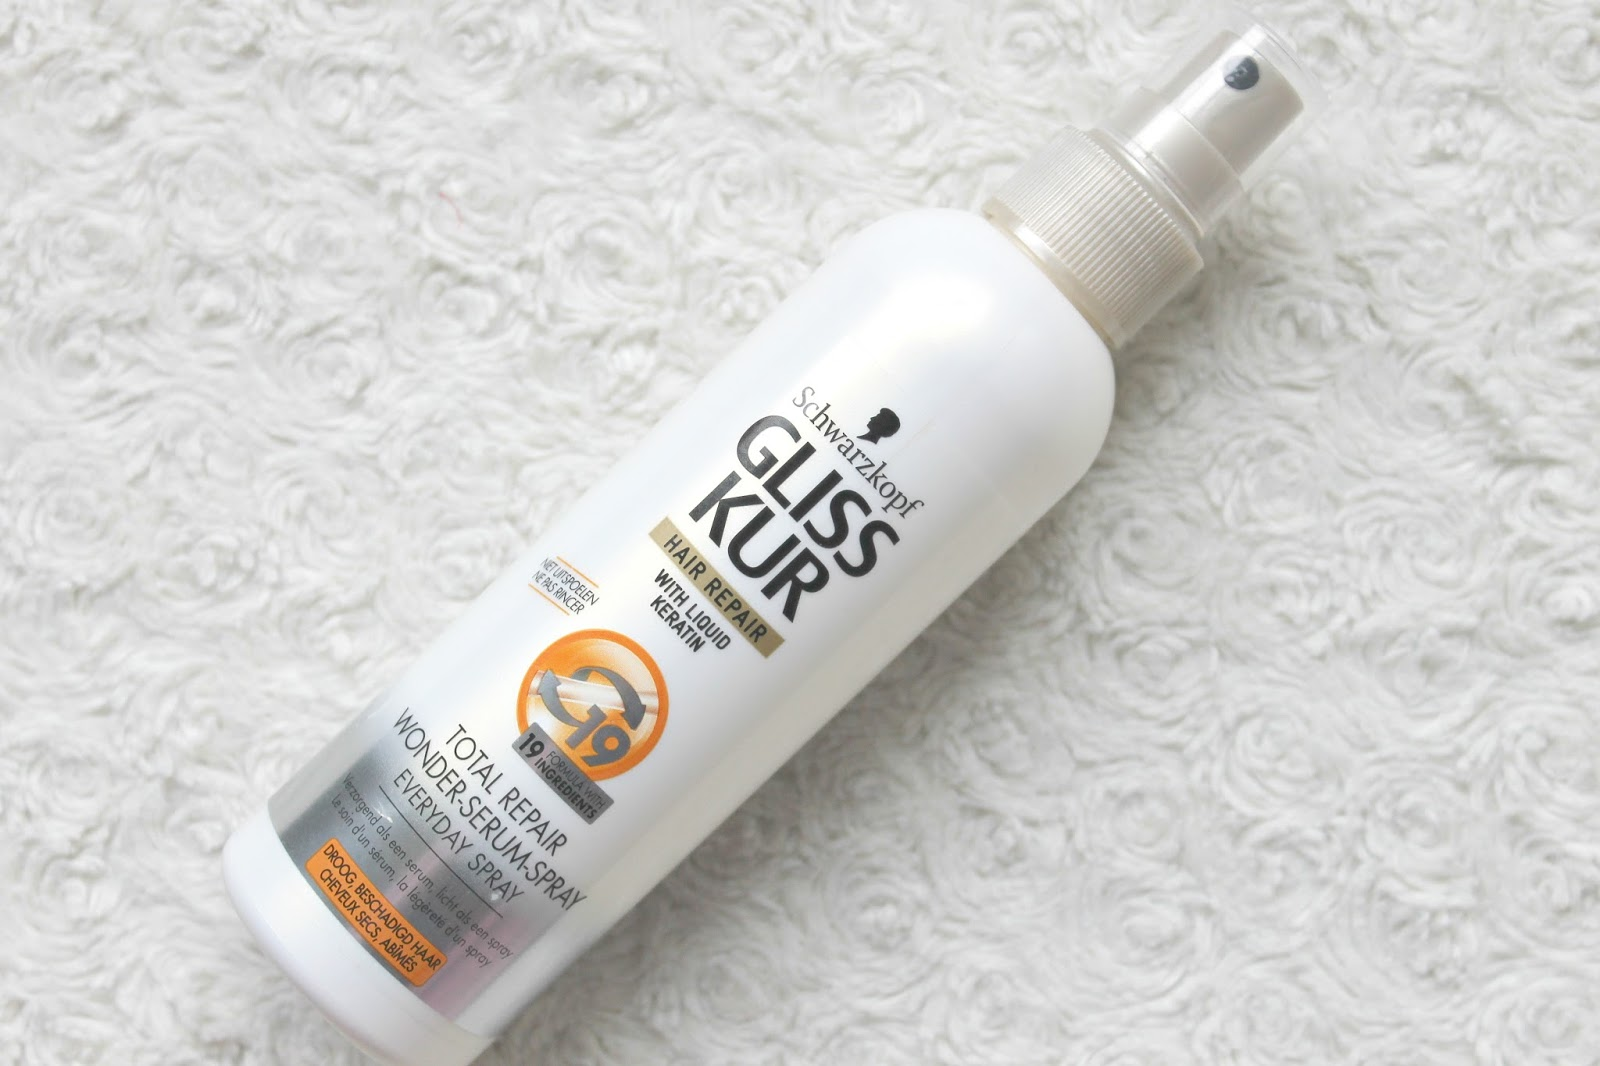 gliss kur total repair wonder serum spray